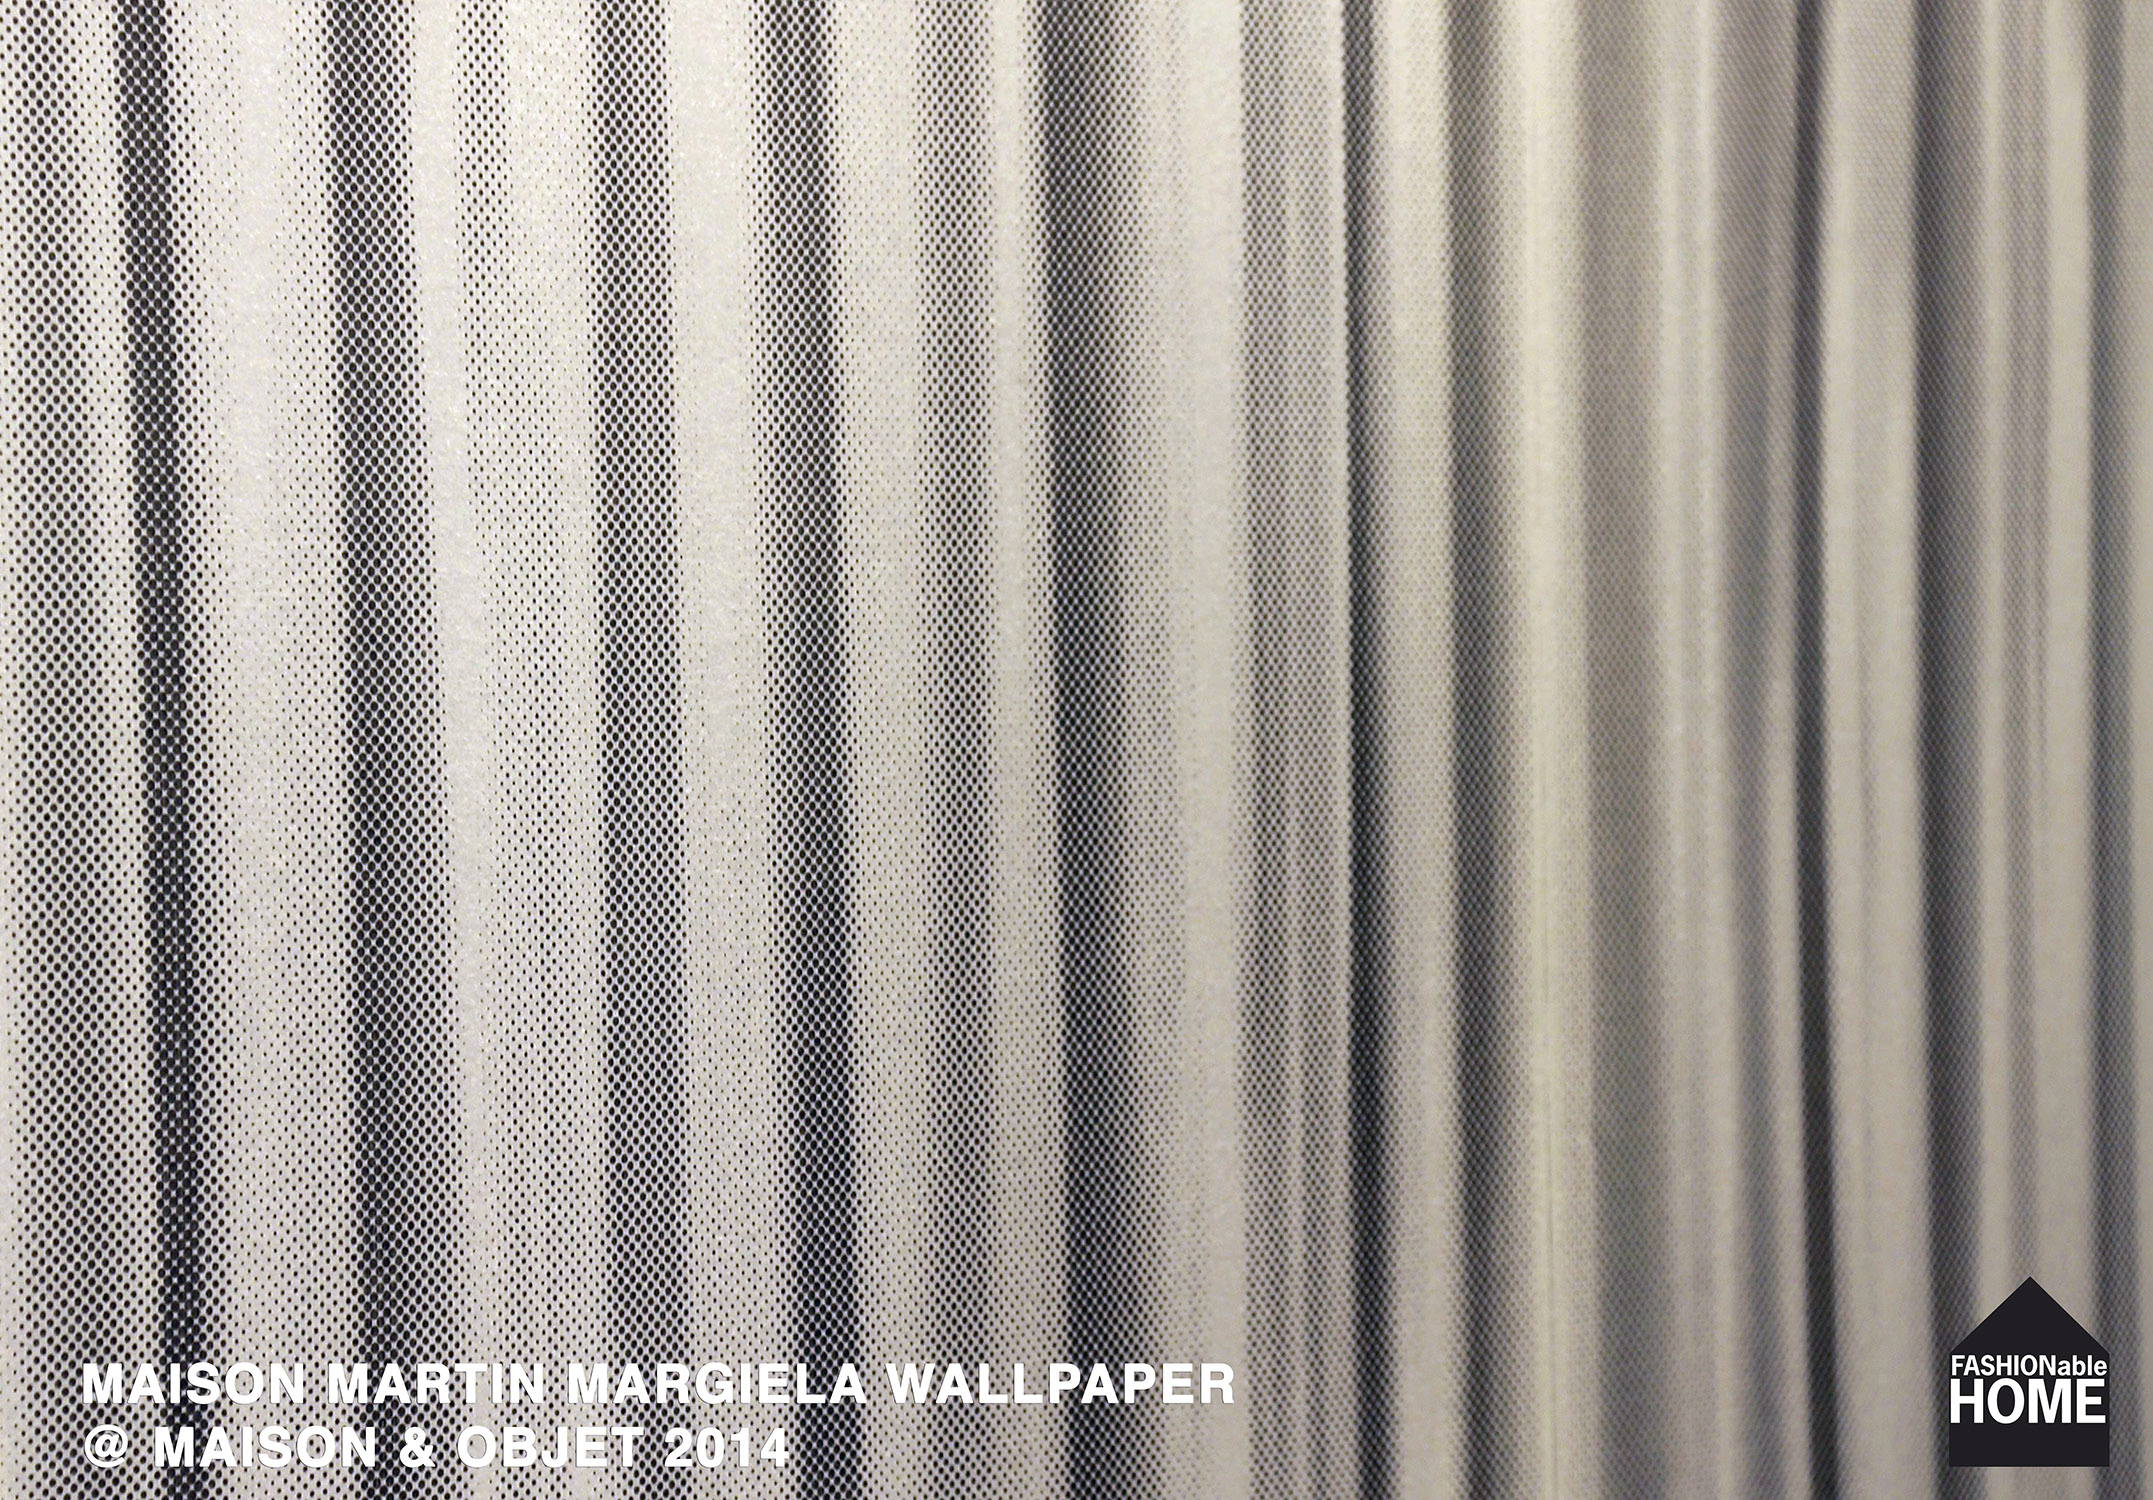 Maison Martin Margiela Wallpapers Launched At Maison Objet